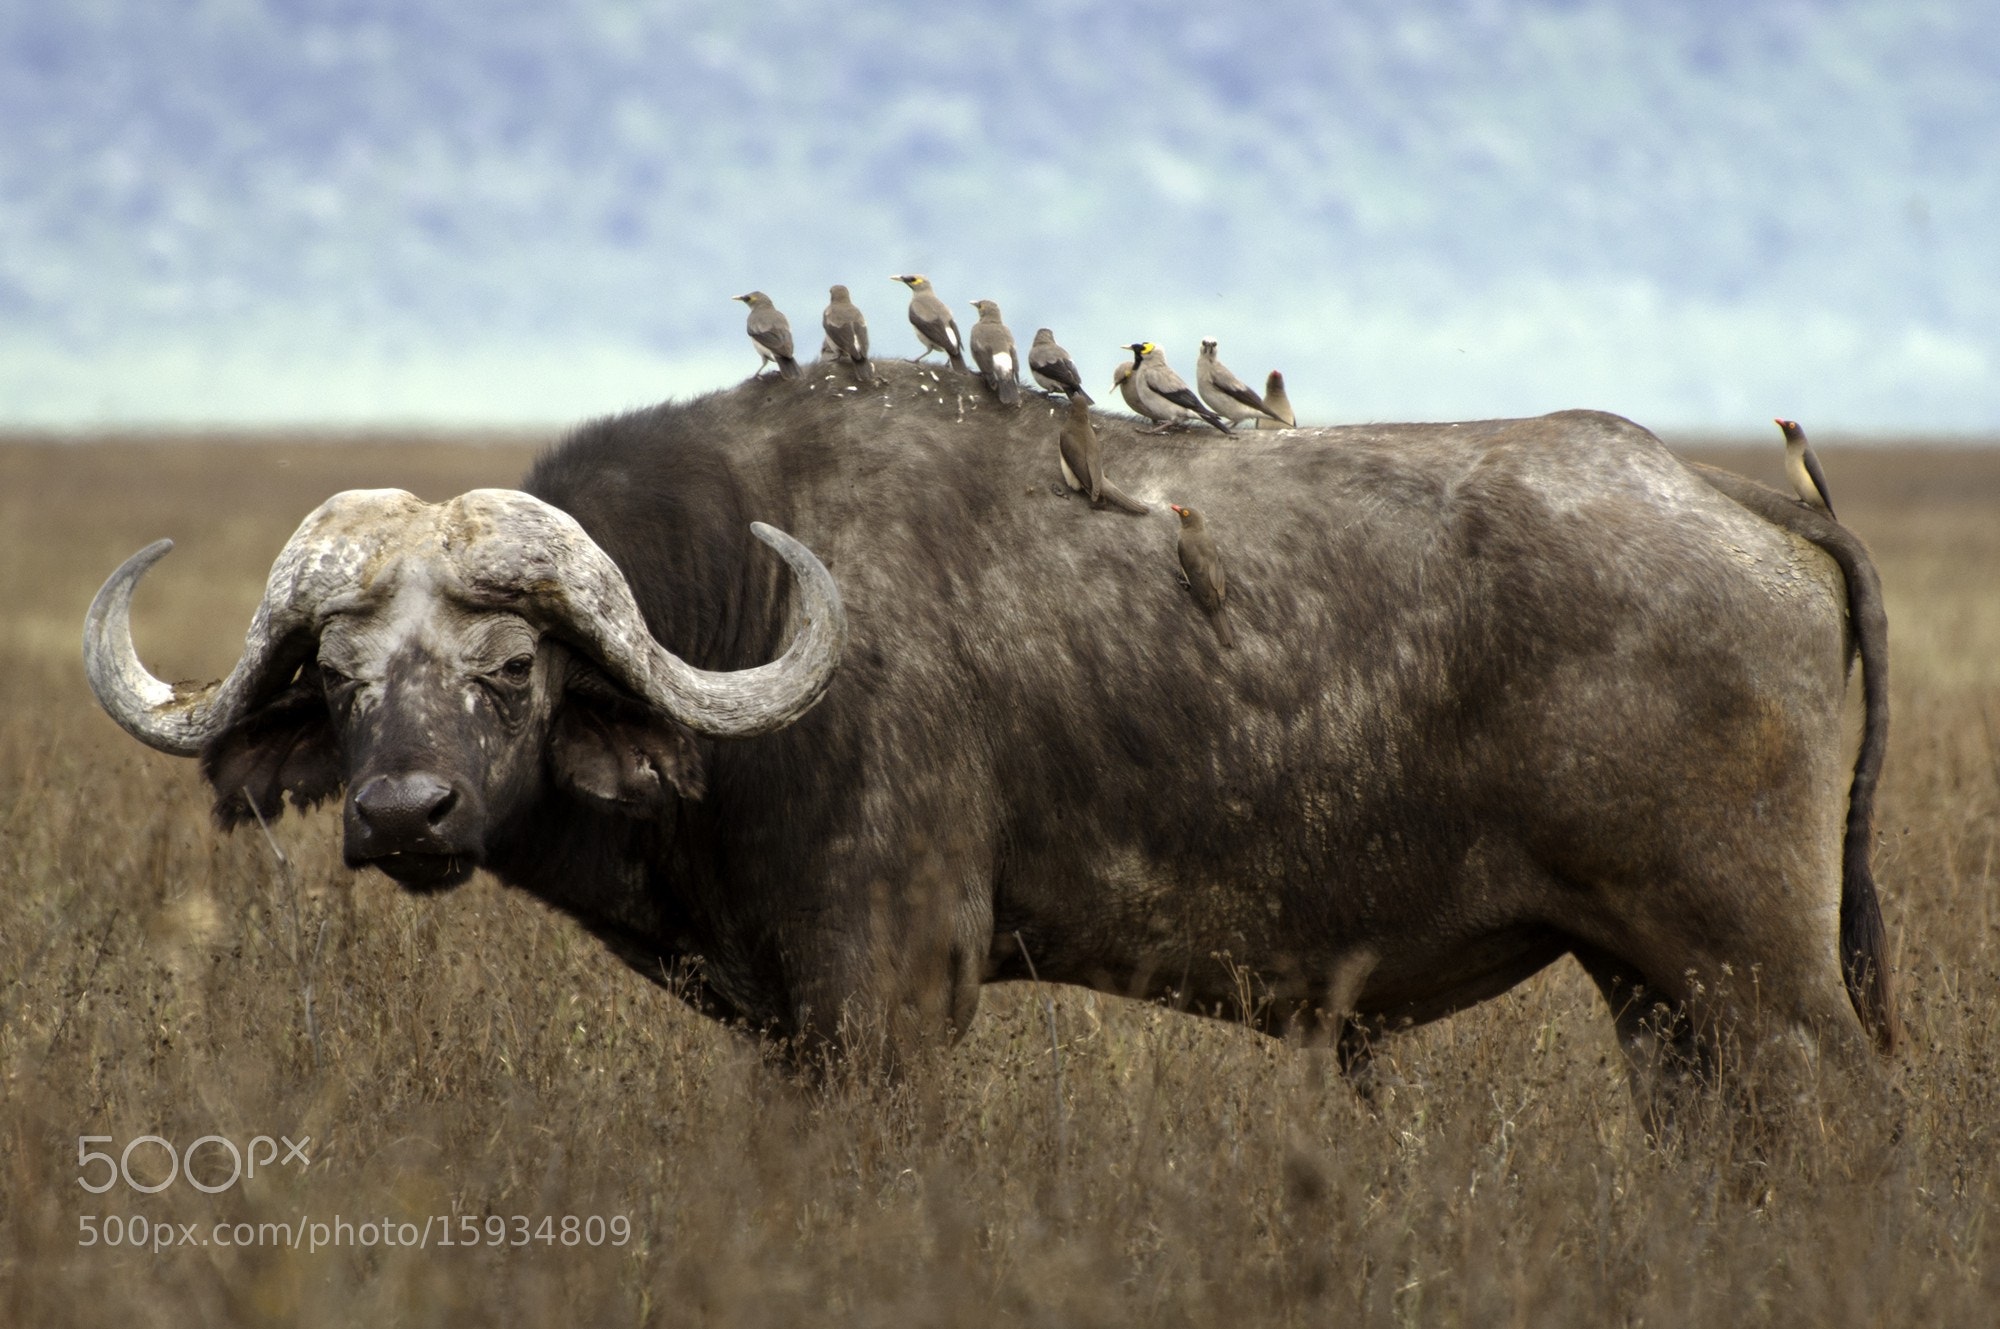 Photograph Buffalo soldier by Yoel Schlaen on 500px